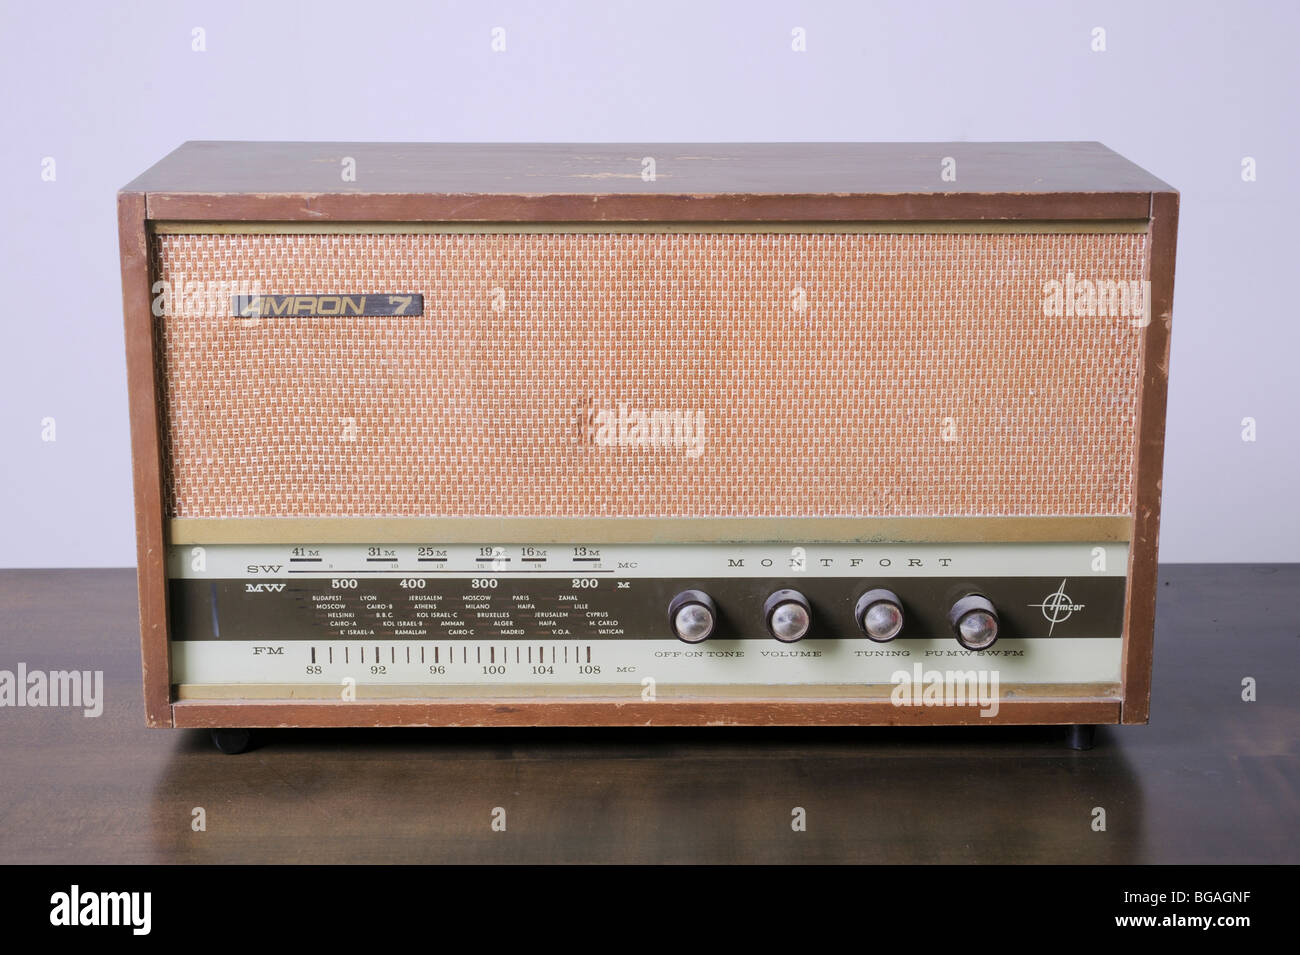 Cutout of a retro Amron 7 radio receiver (Manufactured in Israel by Amcor) on white background - Stock Image